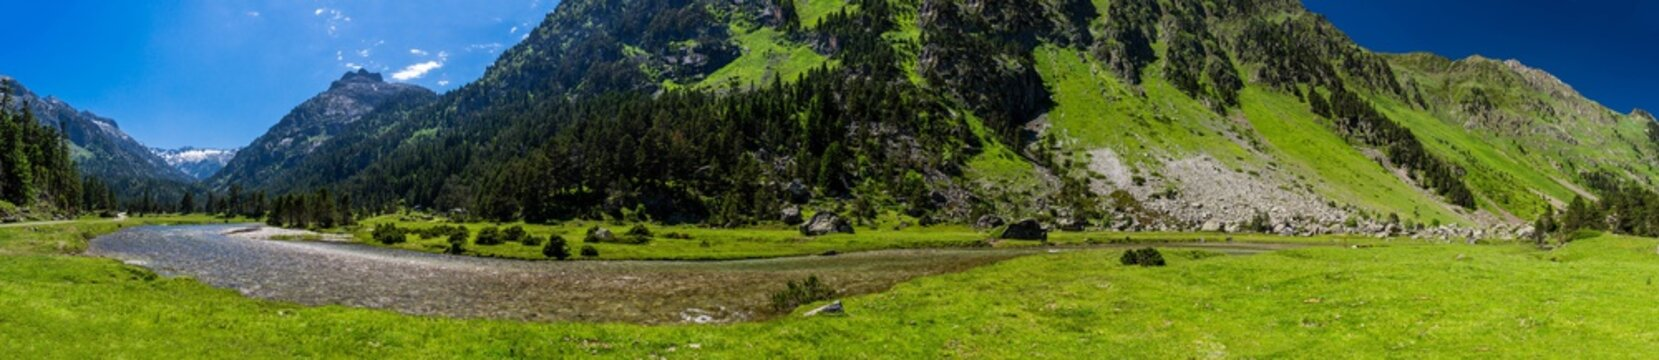 Nice landscape of Marcadau Valley in the French Pyrenees, Trip to Cauterets, France.